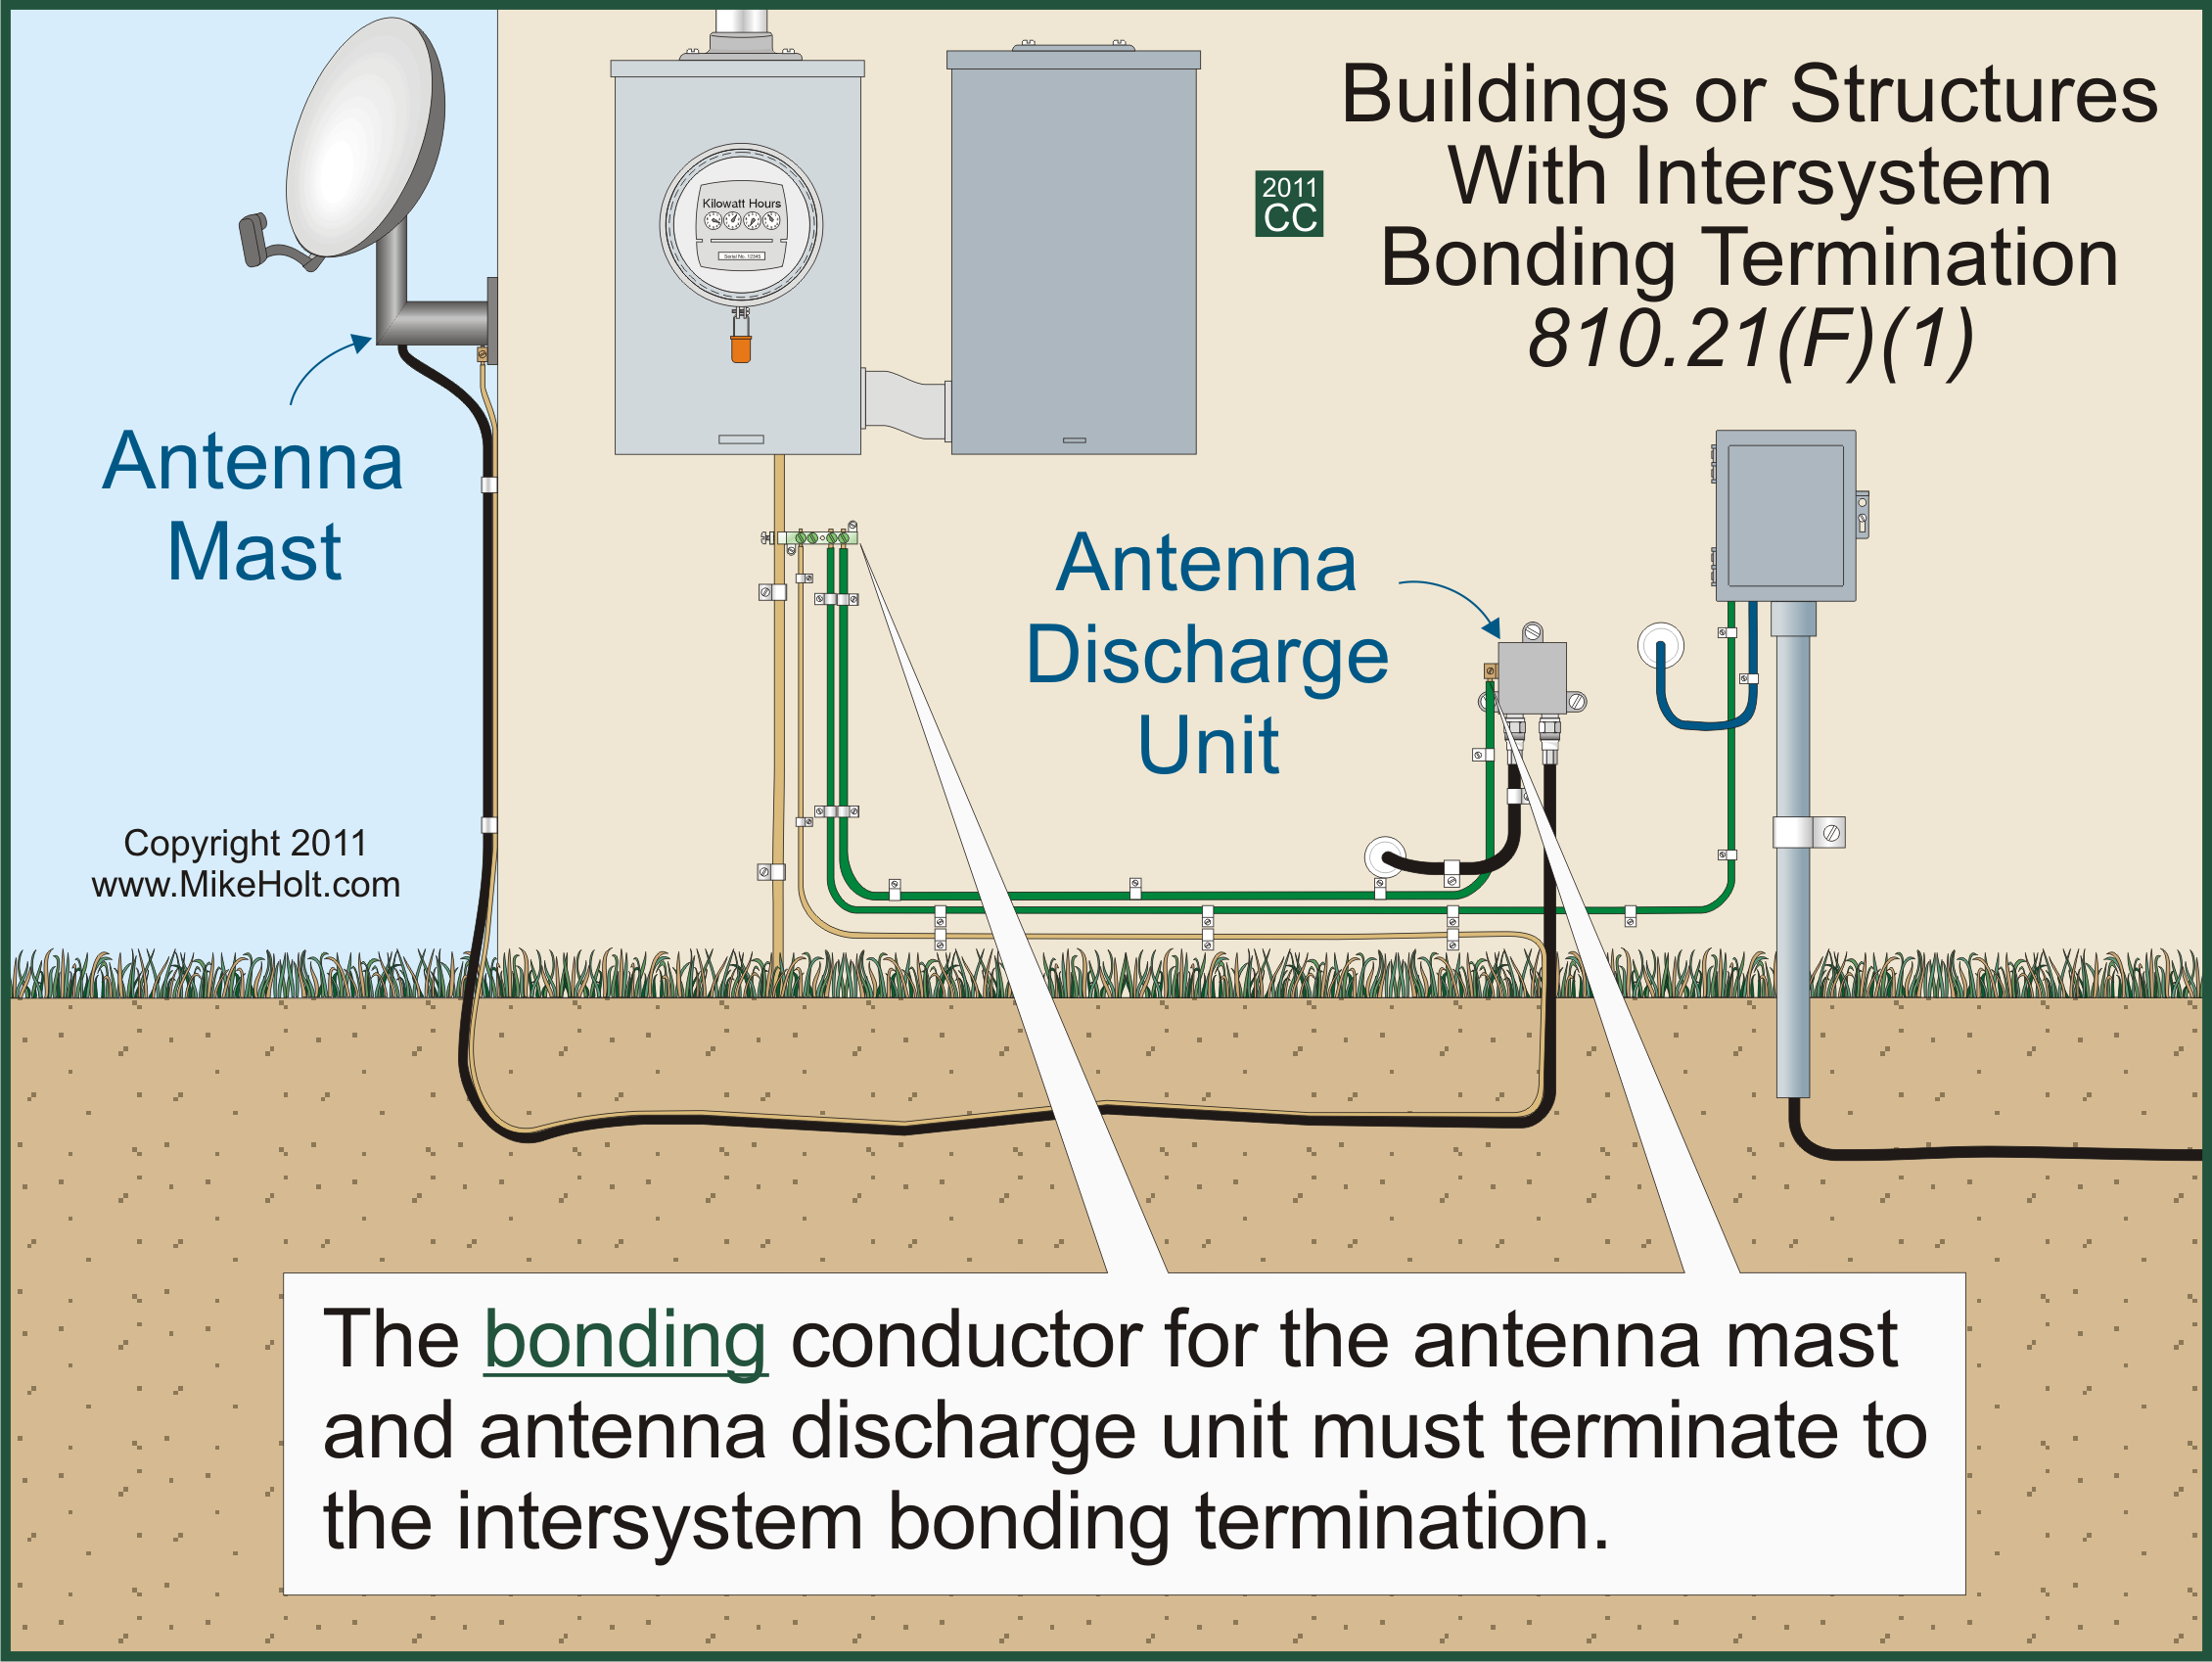 Low Voltage Wiring Building Code